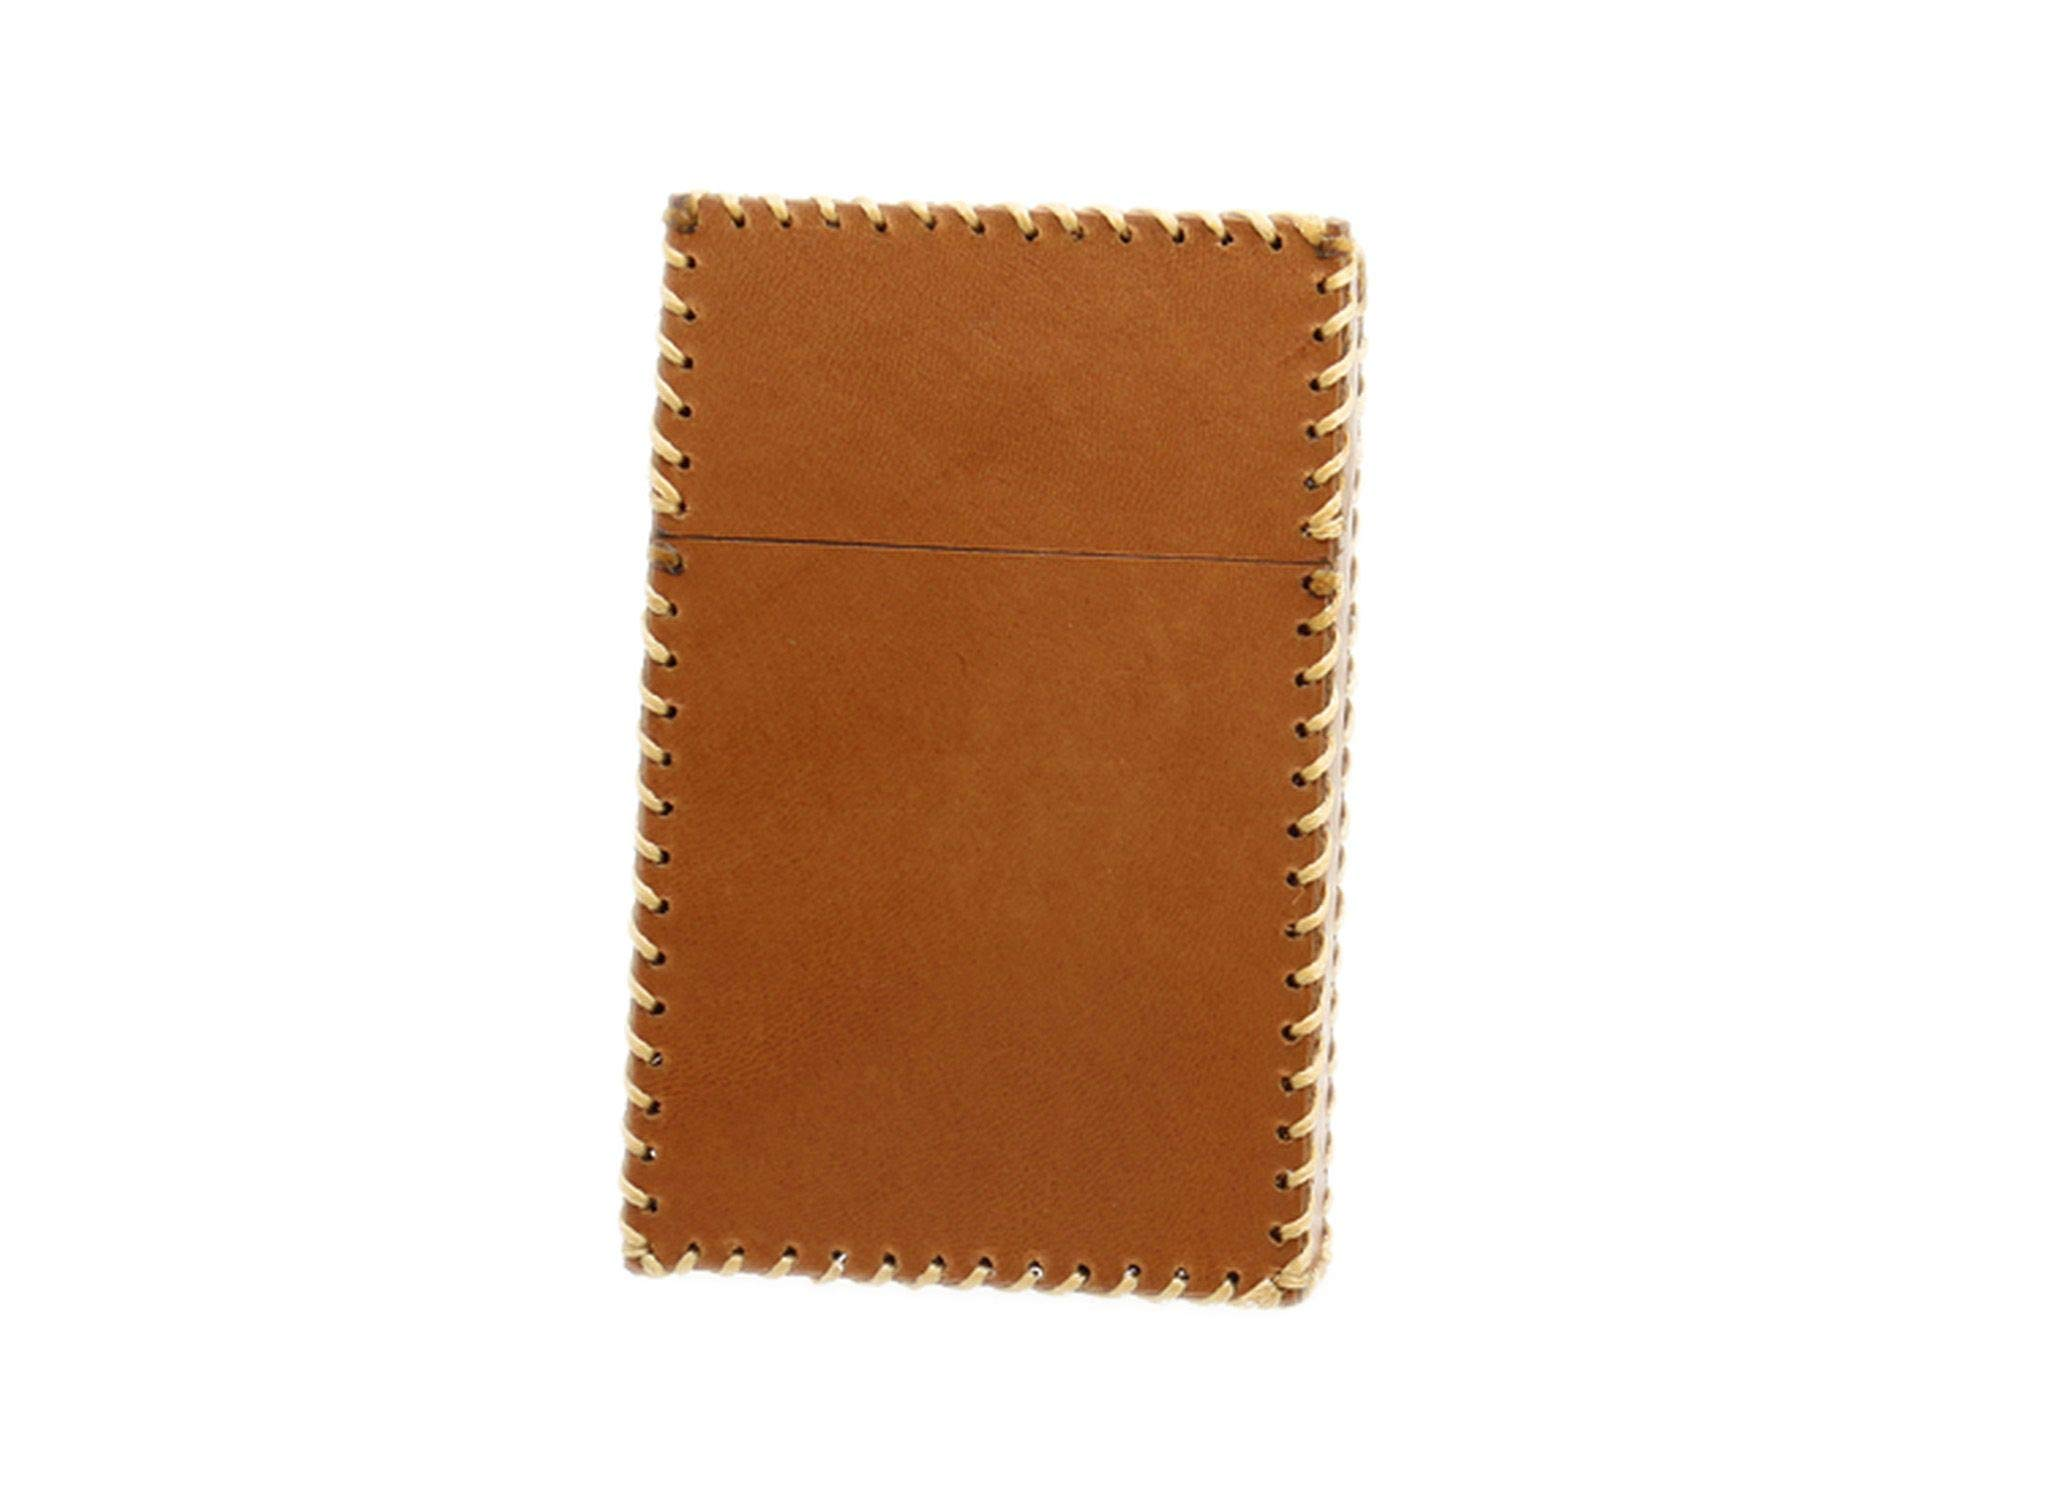 Retro Cigarette Box Cowhide Simple Smooth Leather Hard Box Package 20 Sticks Exquisite Gift Cigarette Cases,Yellow Brown